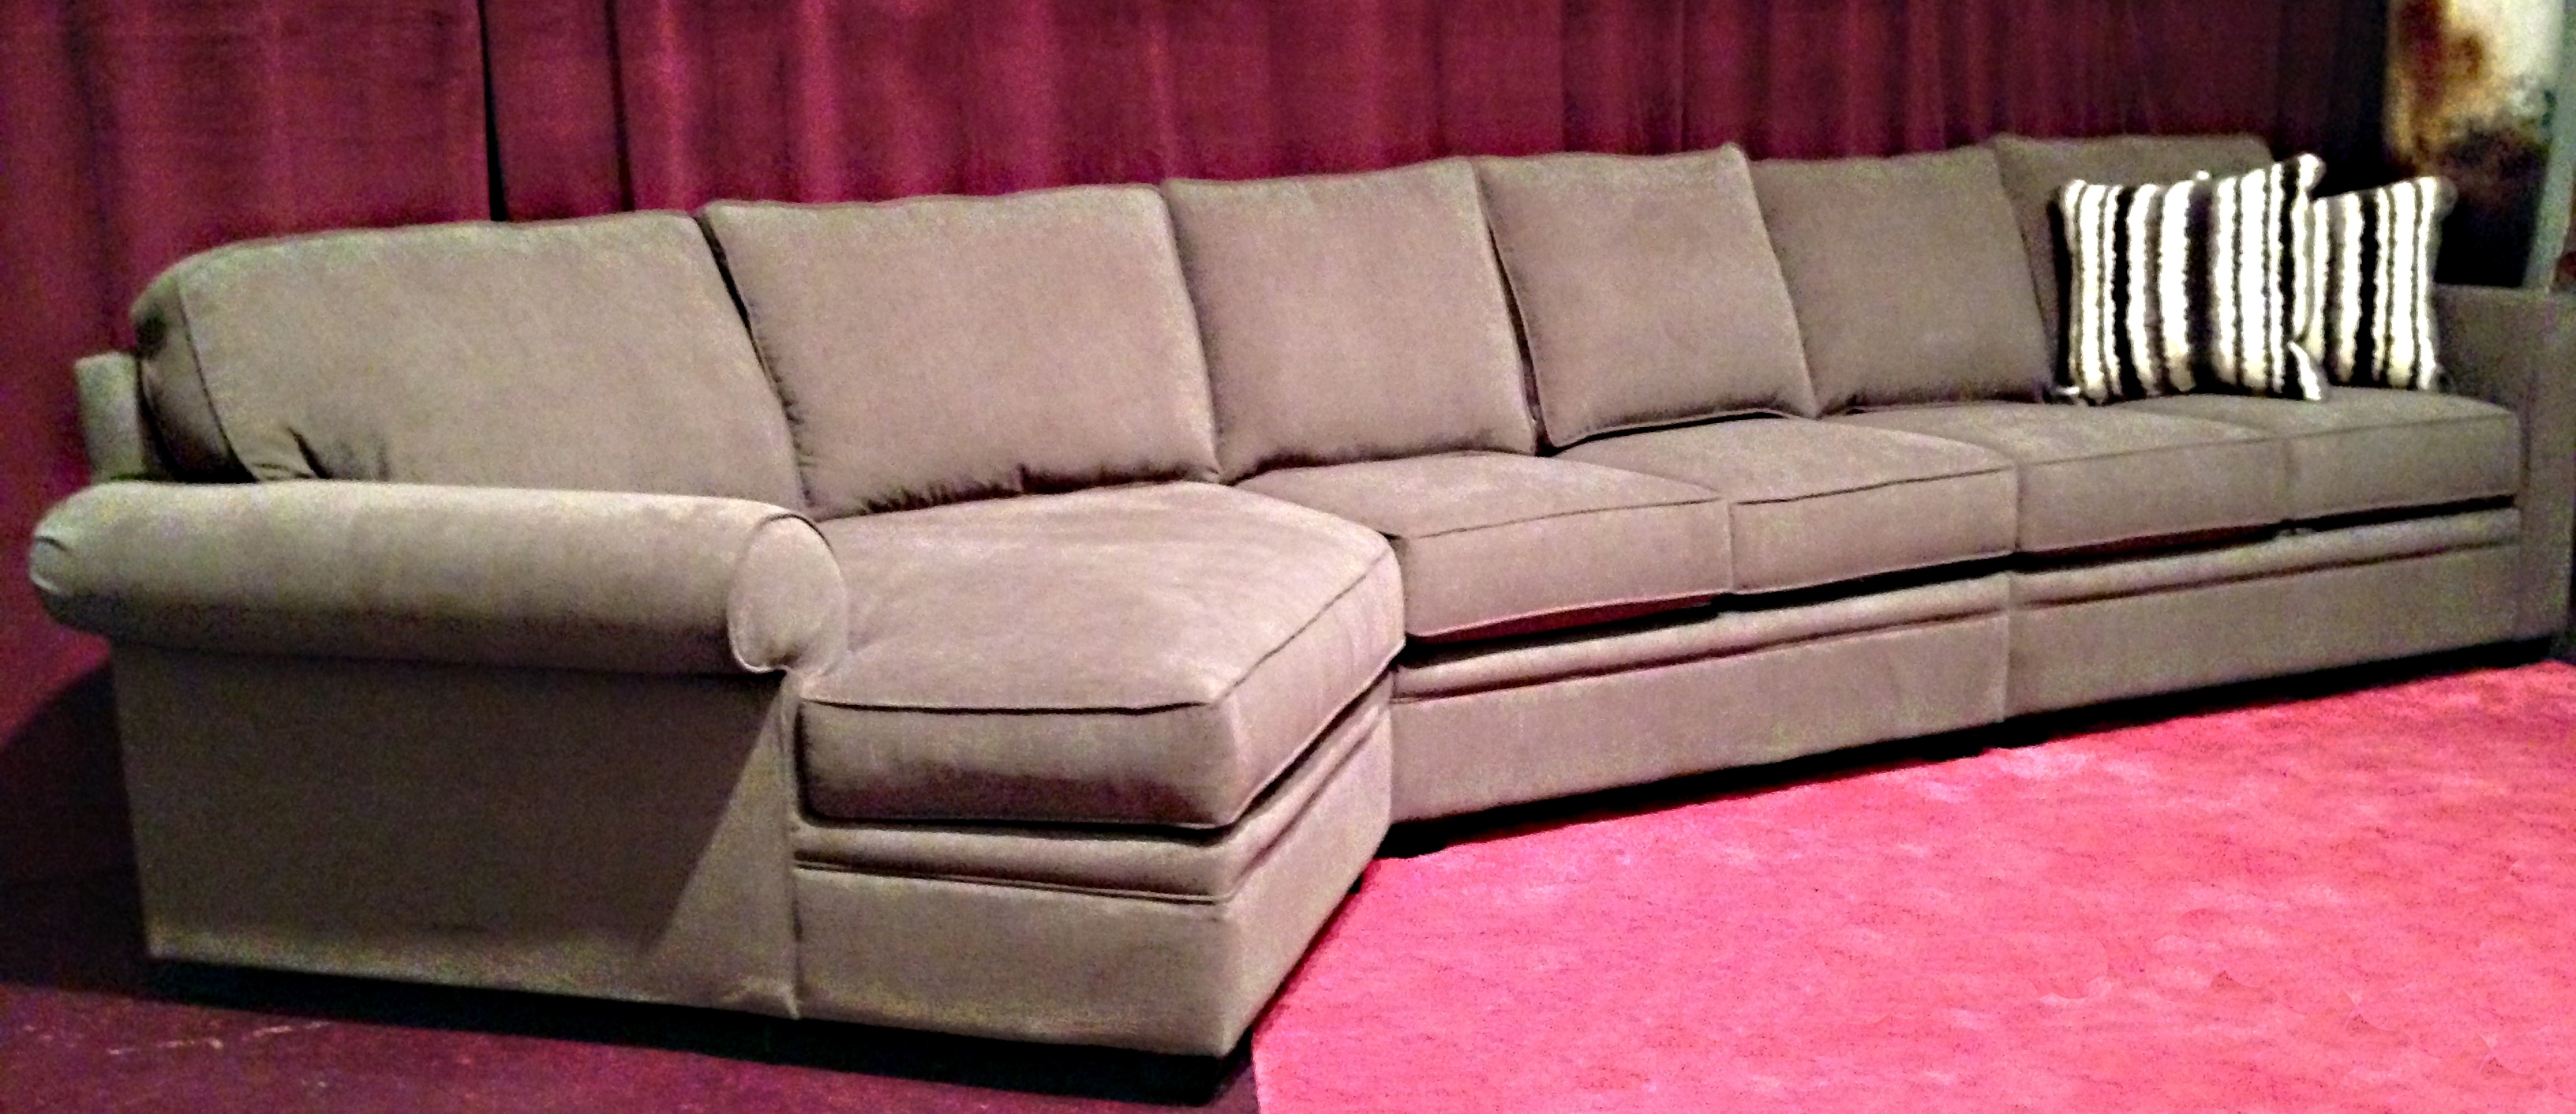 Wonderful Long Sectional Sofas 50 On Used Sectional Sofas Sale With For Used Sectional Sofas (View 7 of 10)